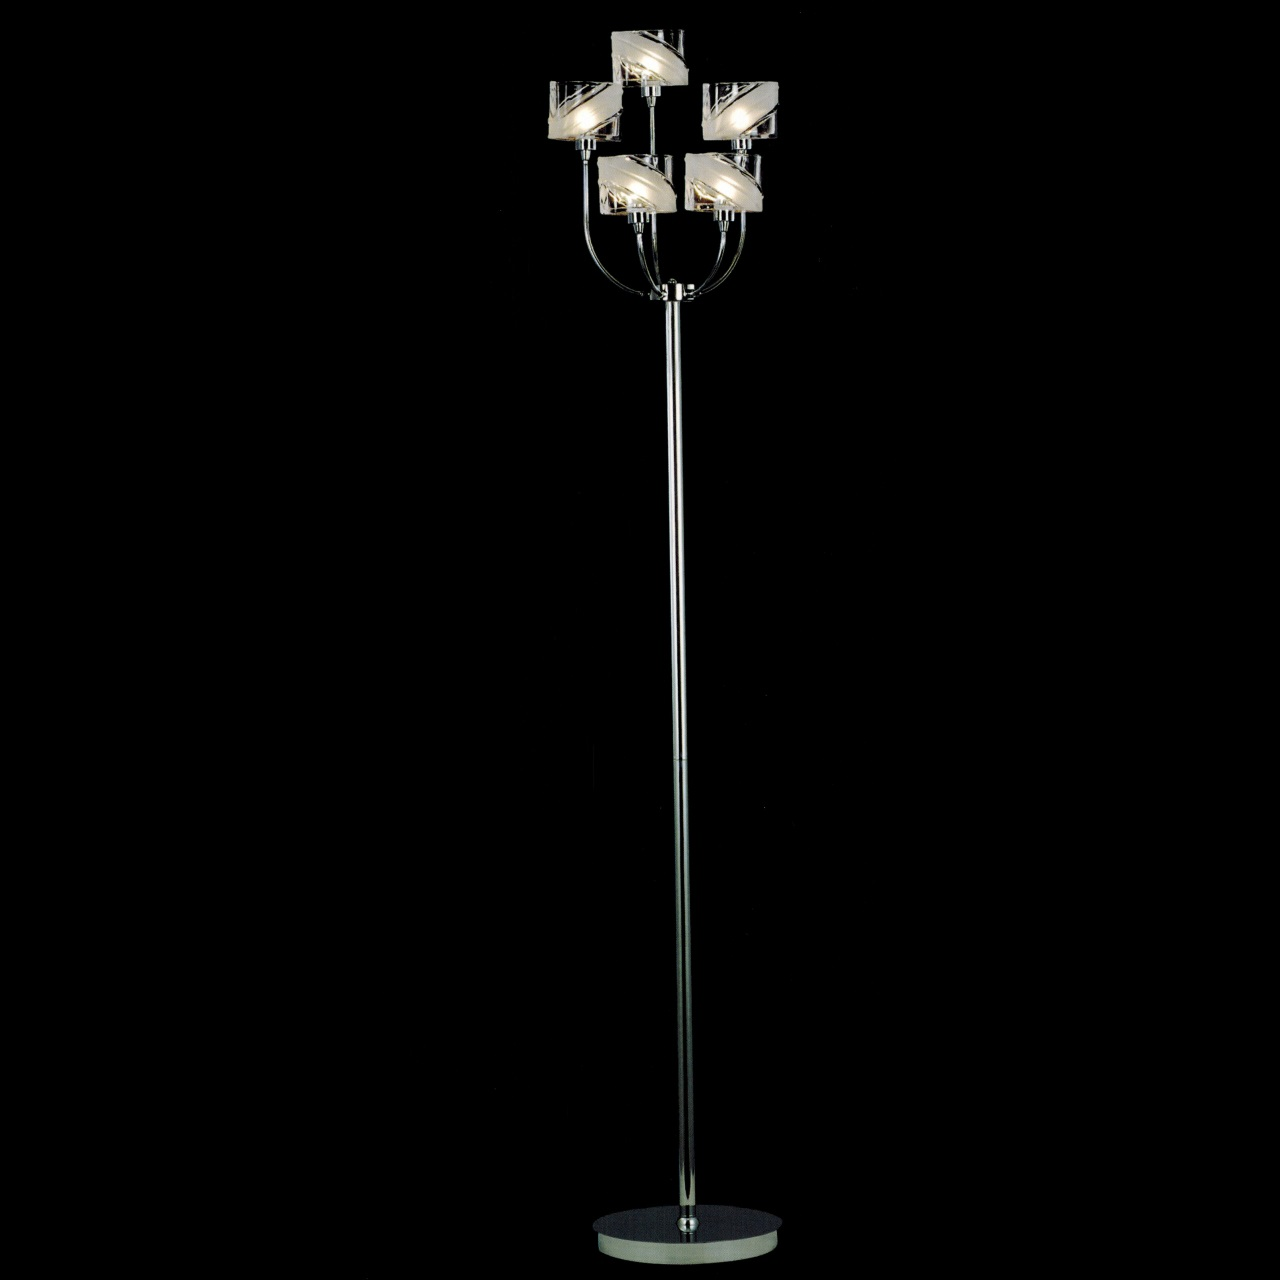 brizzo lighting stores 15 blocchi modern floor lamp chrome gold finish clear white glass 5. Black Bedroom Furniture Sets. Home Design Ideas